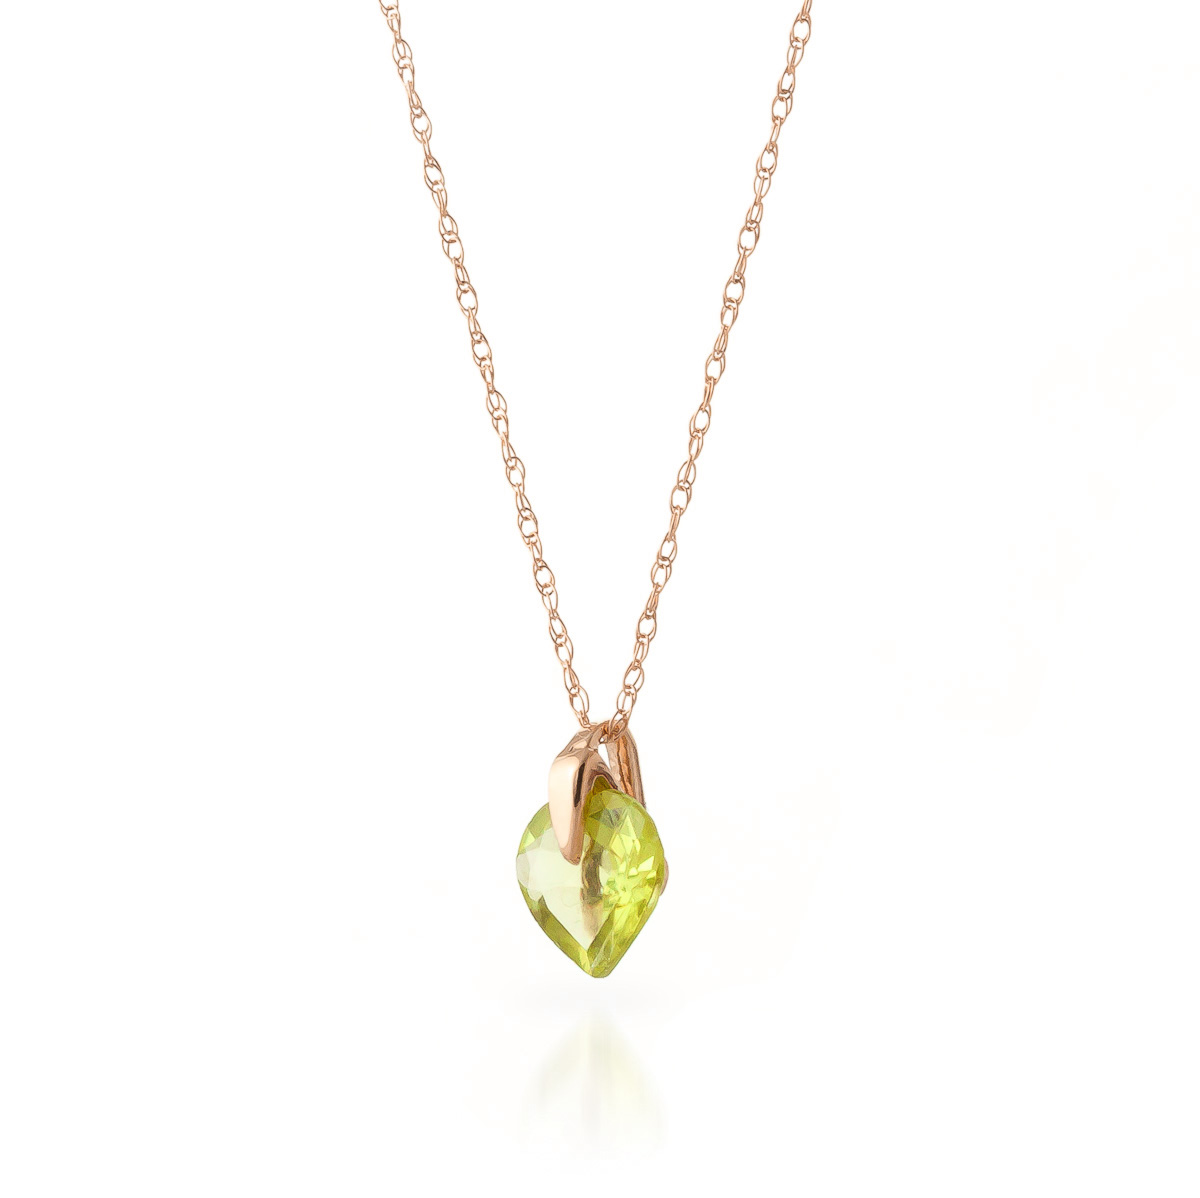 Peridot Heart Pendant Necklace 1.15 ct in 9ct Rose Gold